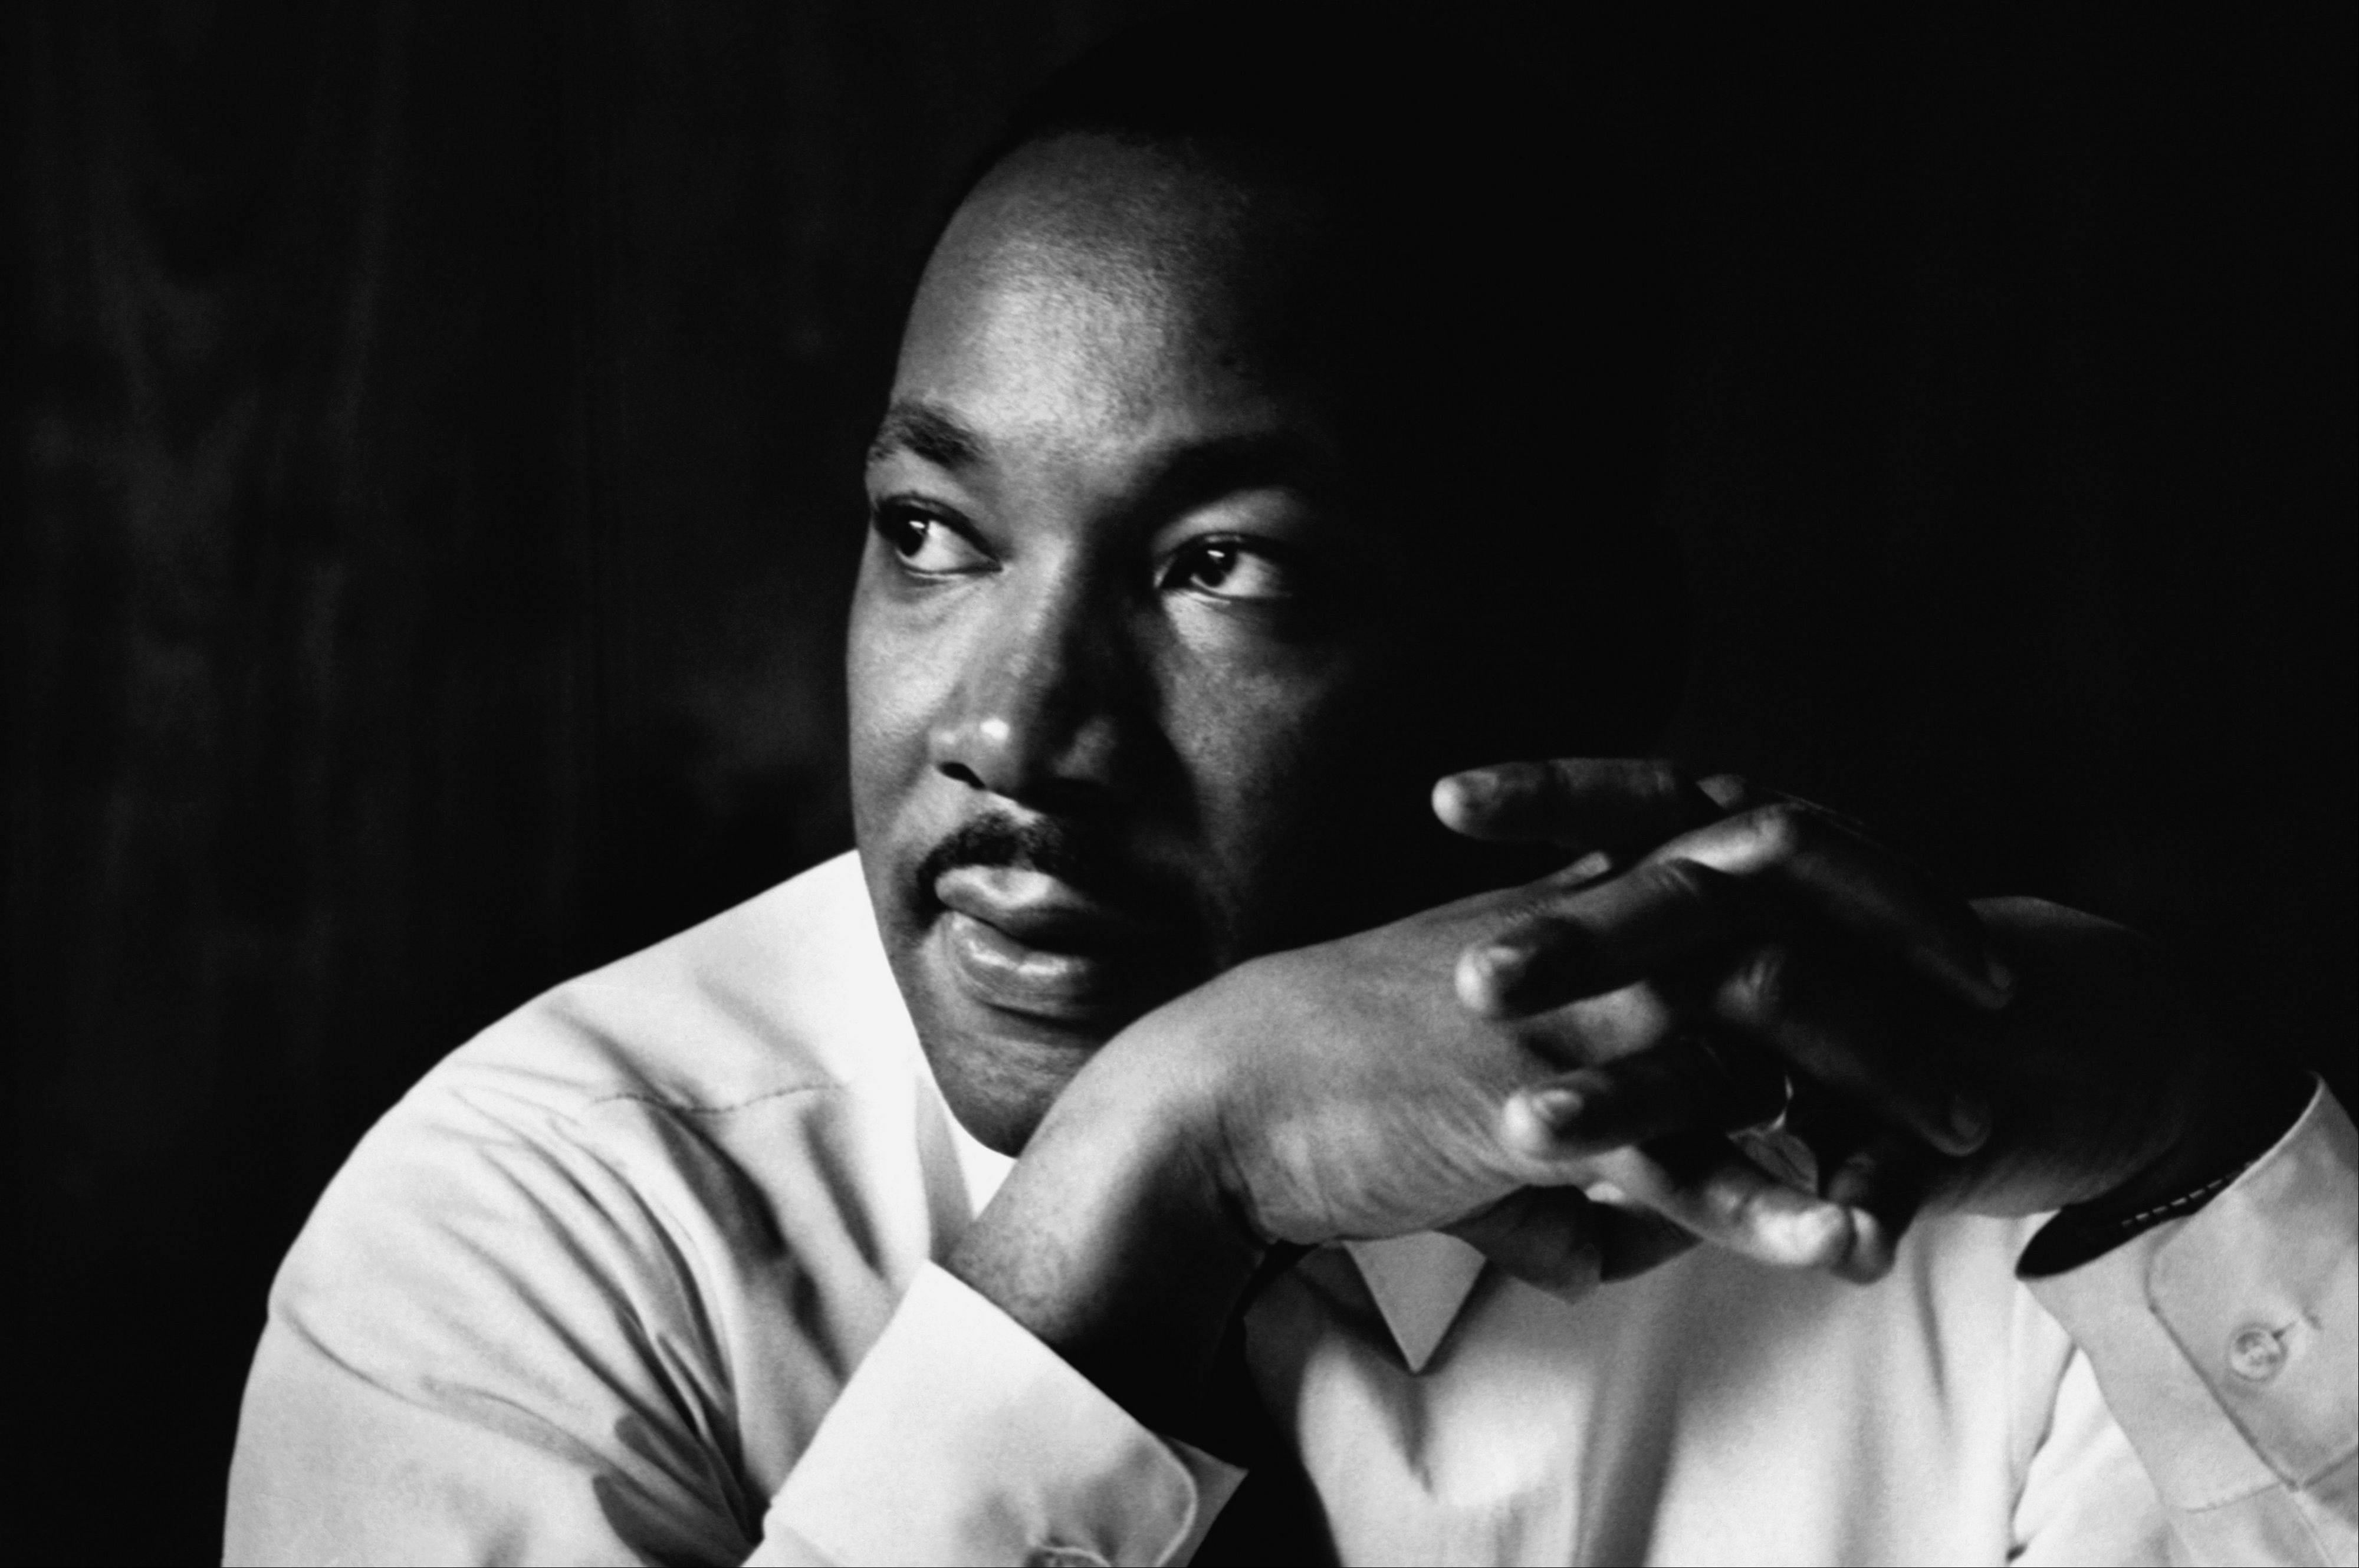 Images: Martin Luther King, Jr.